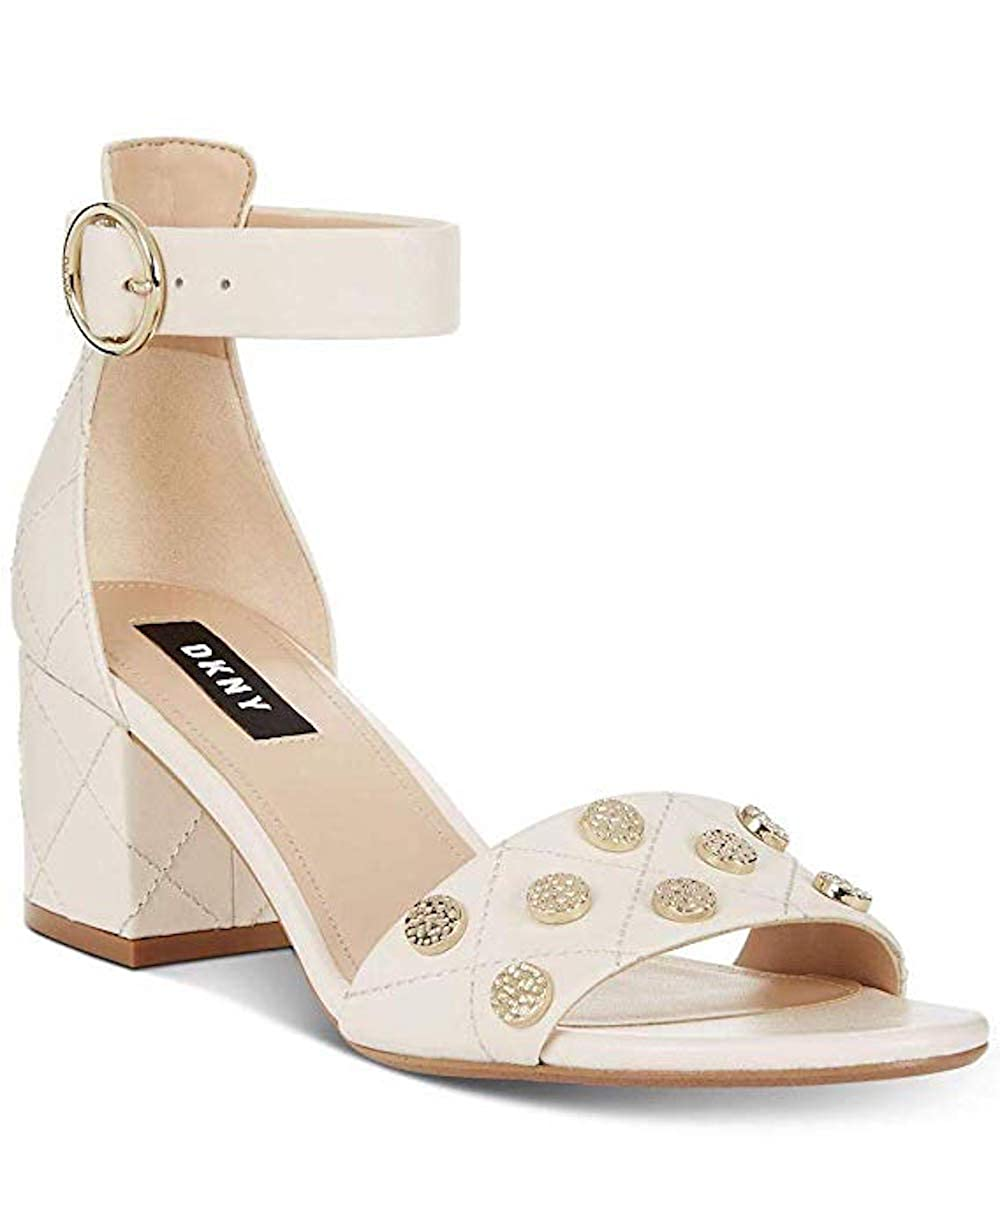 Ivory DKNY Womens Henli Leather Studded Dress Sandals